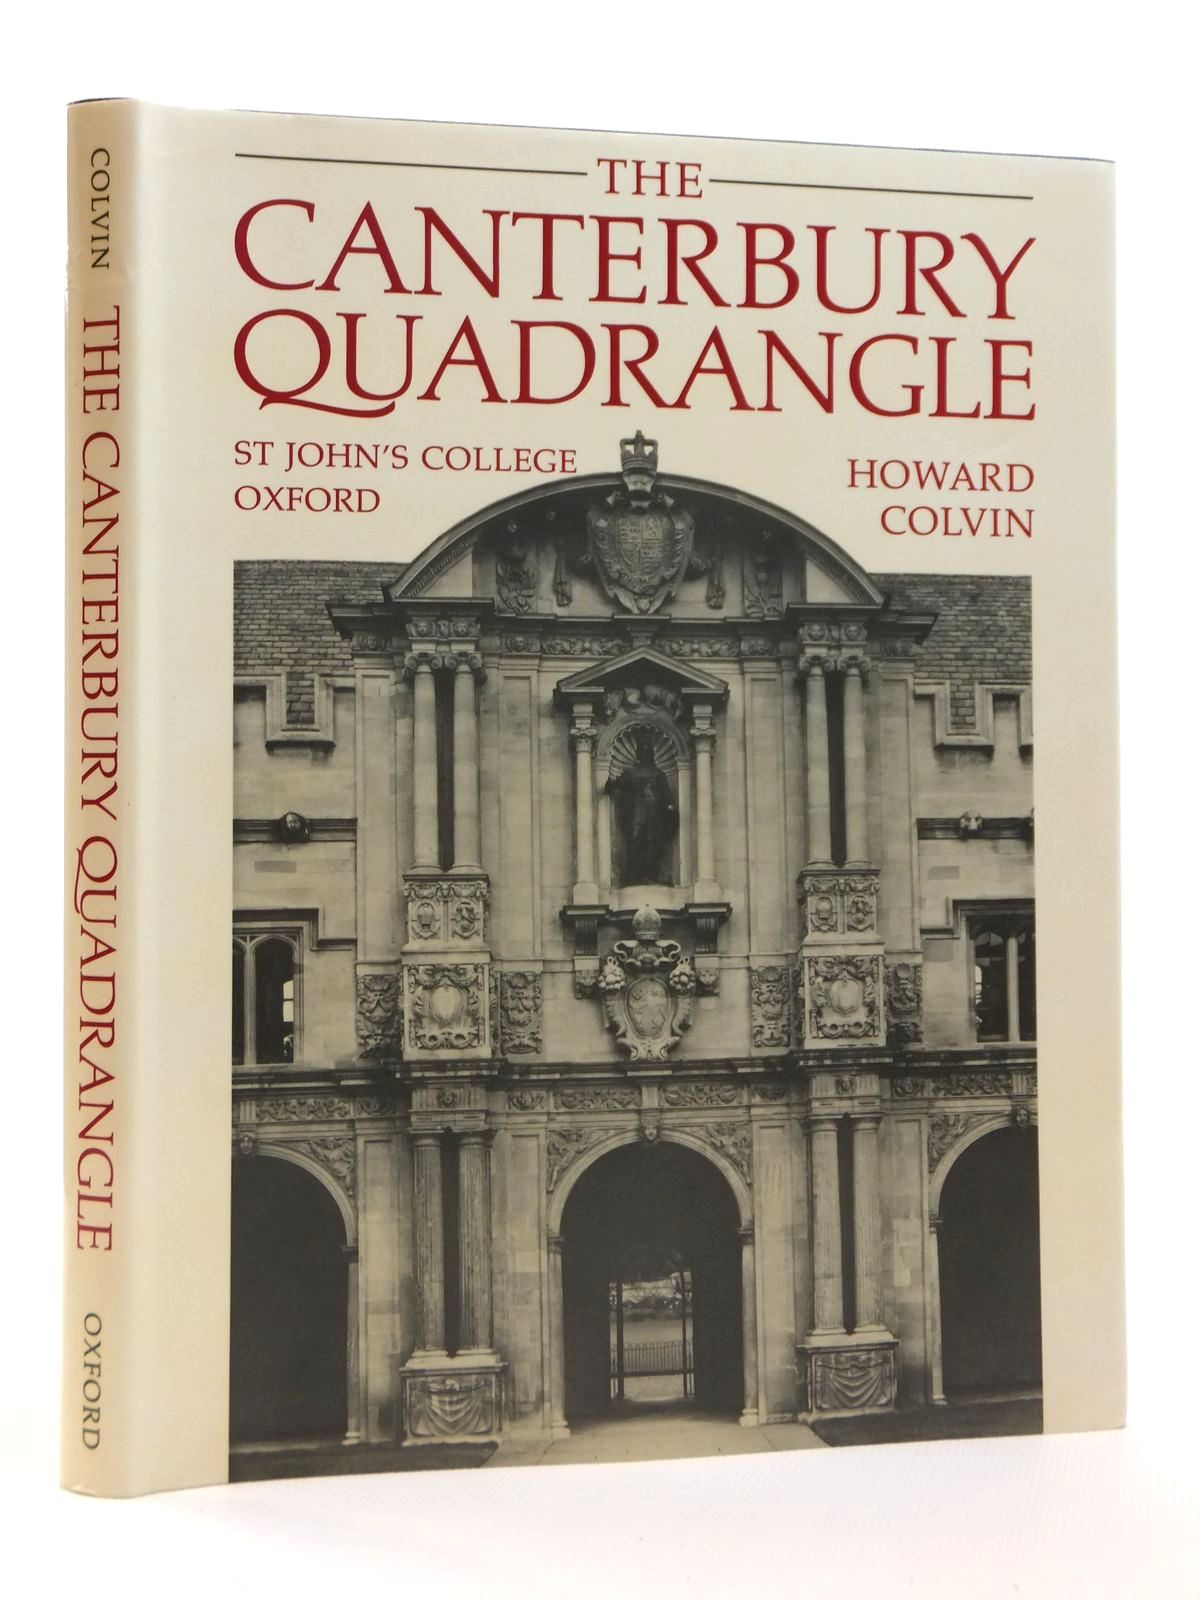 Photo of THE CANTERBURY QUADRANGLE ST JOHN'S COLLEGE OXFORD written by Colvin, Howard published by Oxford University Press (STOCK CODE: 1608217)  for sale by Stella & Rose's Books